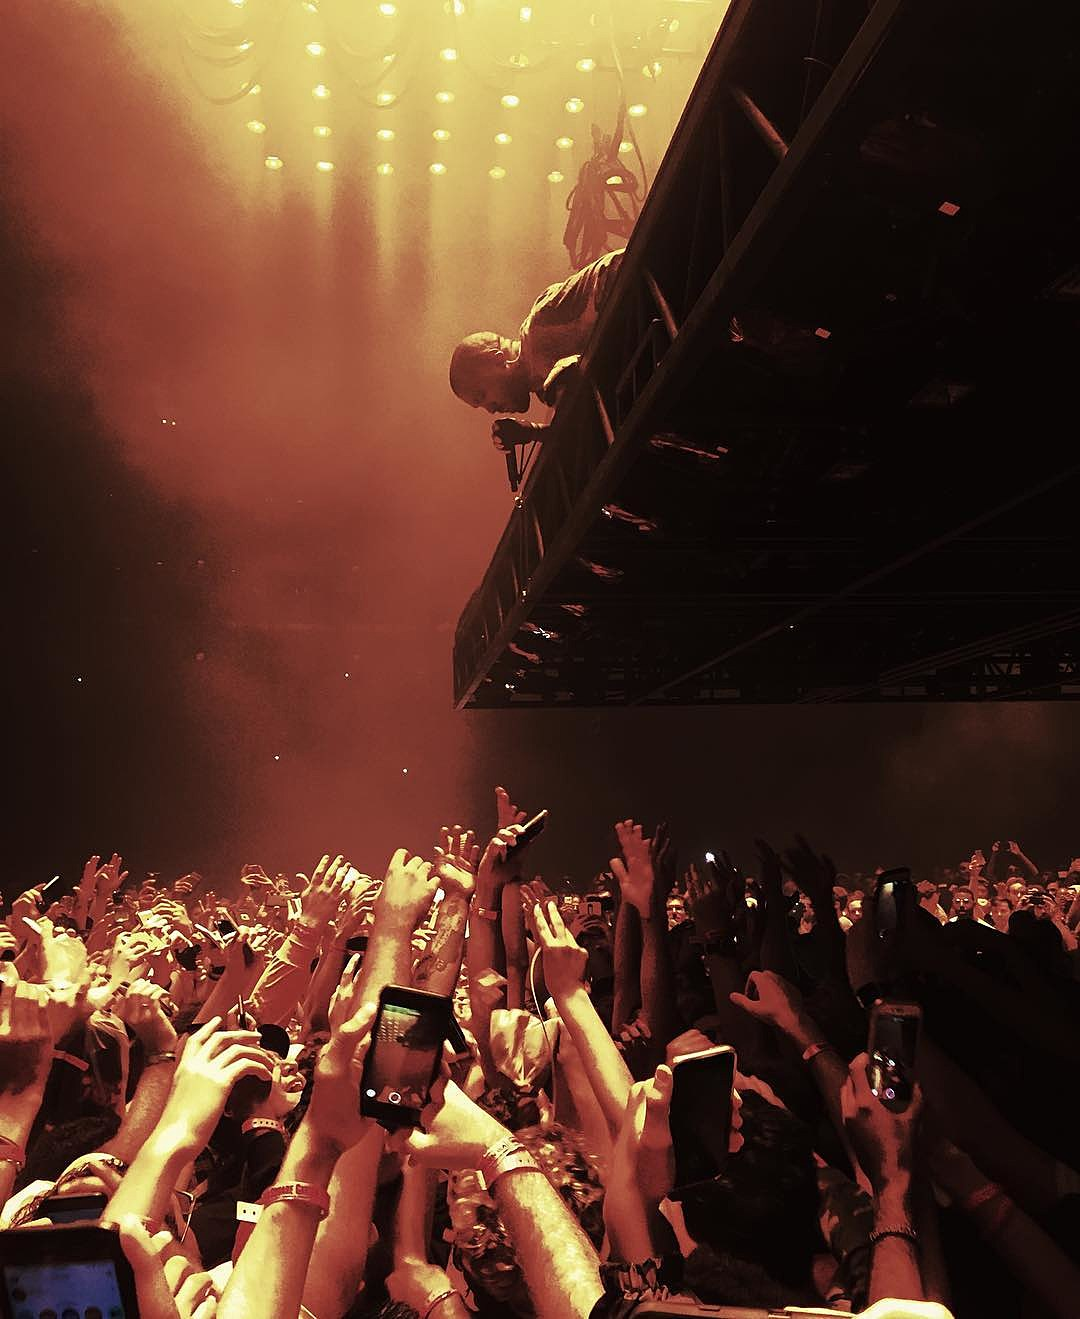 Kanye Began His 2 Night Stand At Msg After Joining Bad Boy Reunion